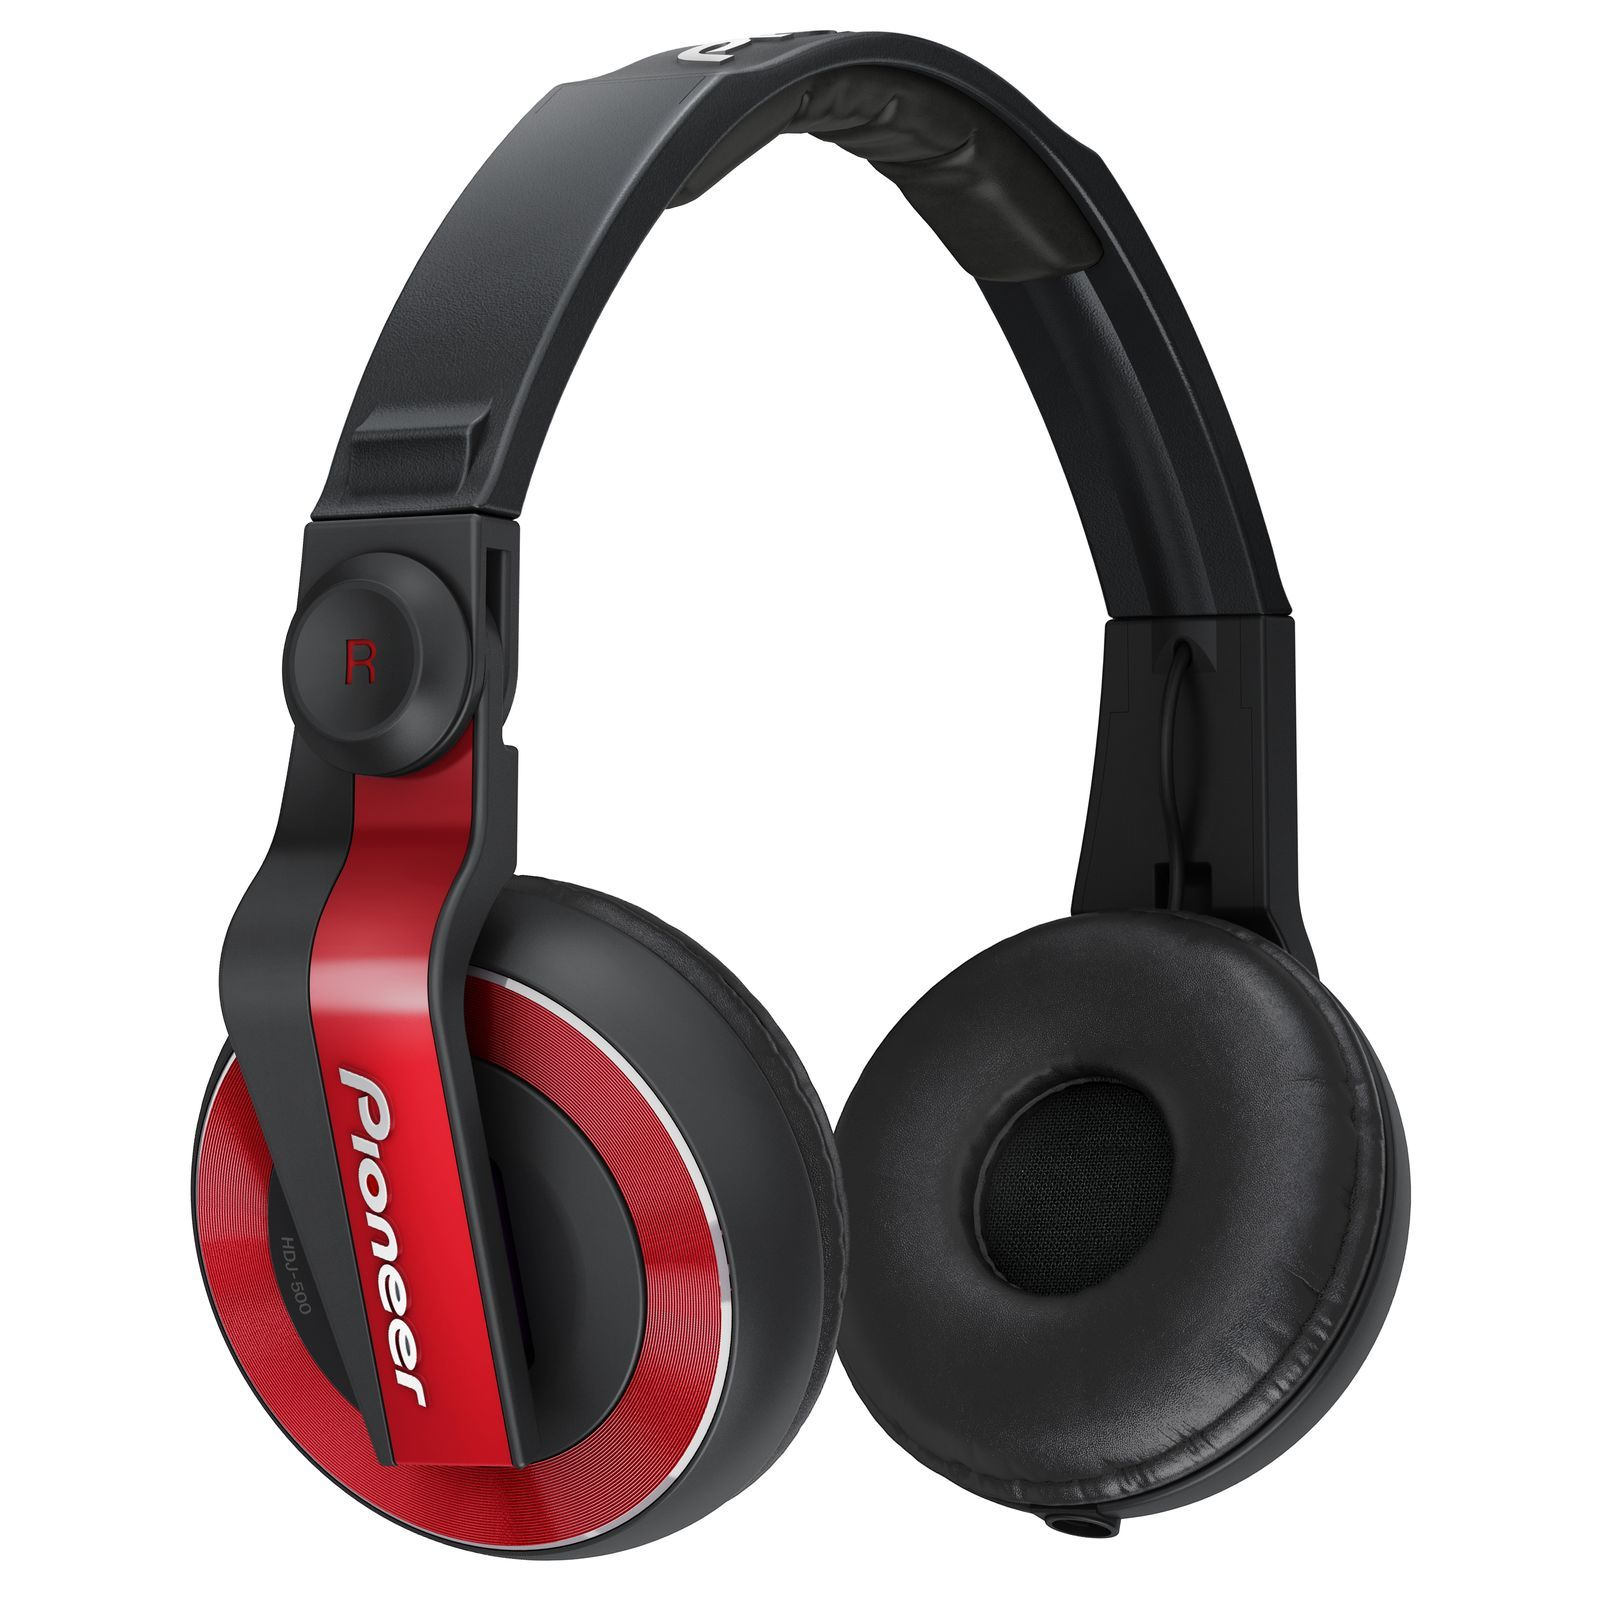 Pioneer HDJ-500-R Red DJ Headphones Product Image